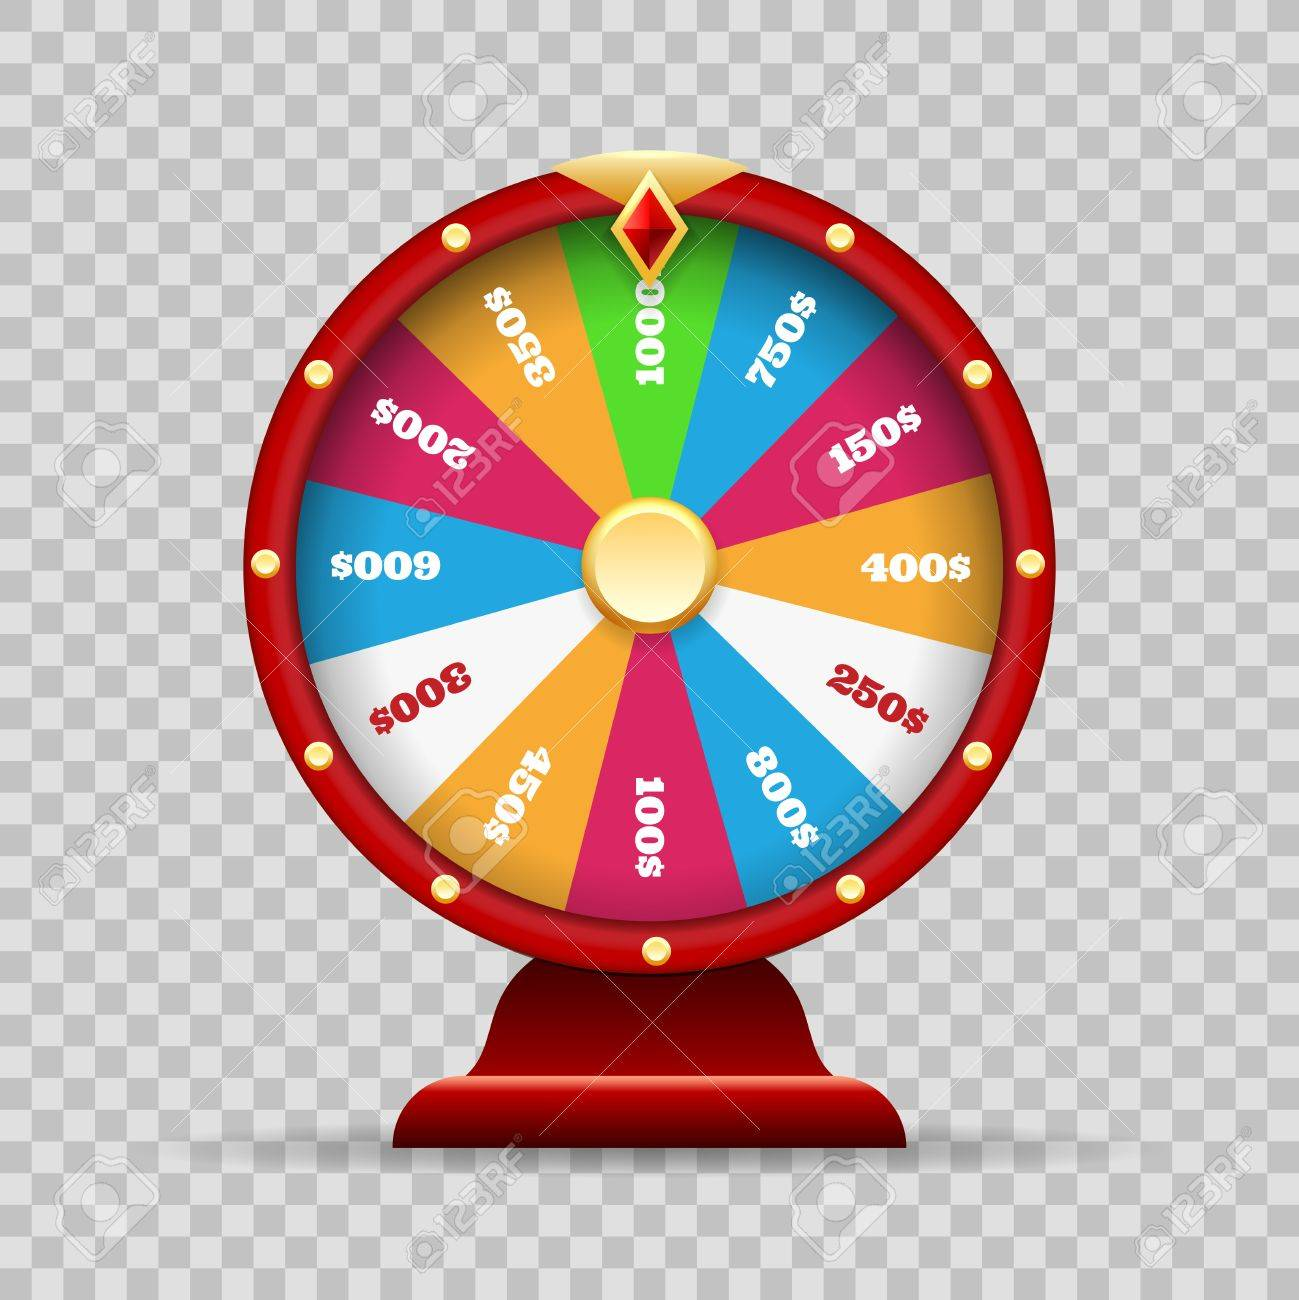 Luck Wheel Of Fortune Or Lottery Spinning Game On Transparency Royalty Free Cliparts Vectors And Stock Illustration Image 84439119